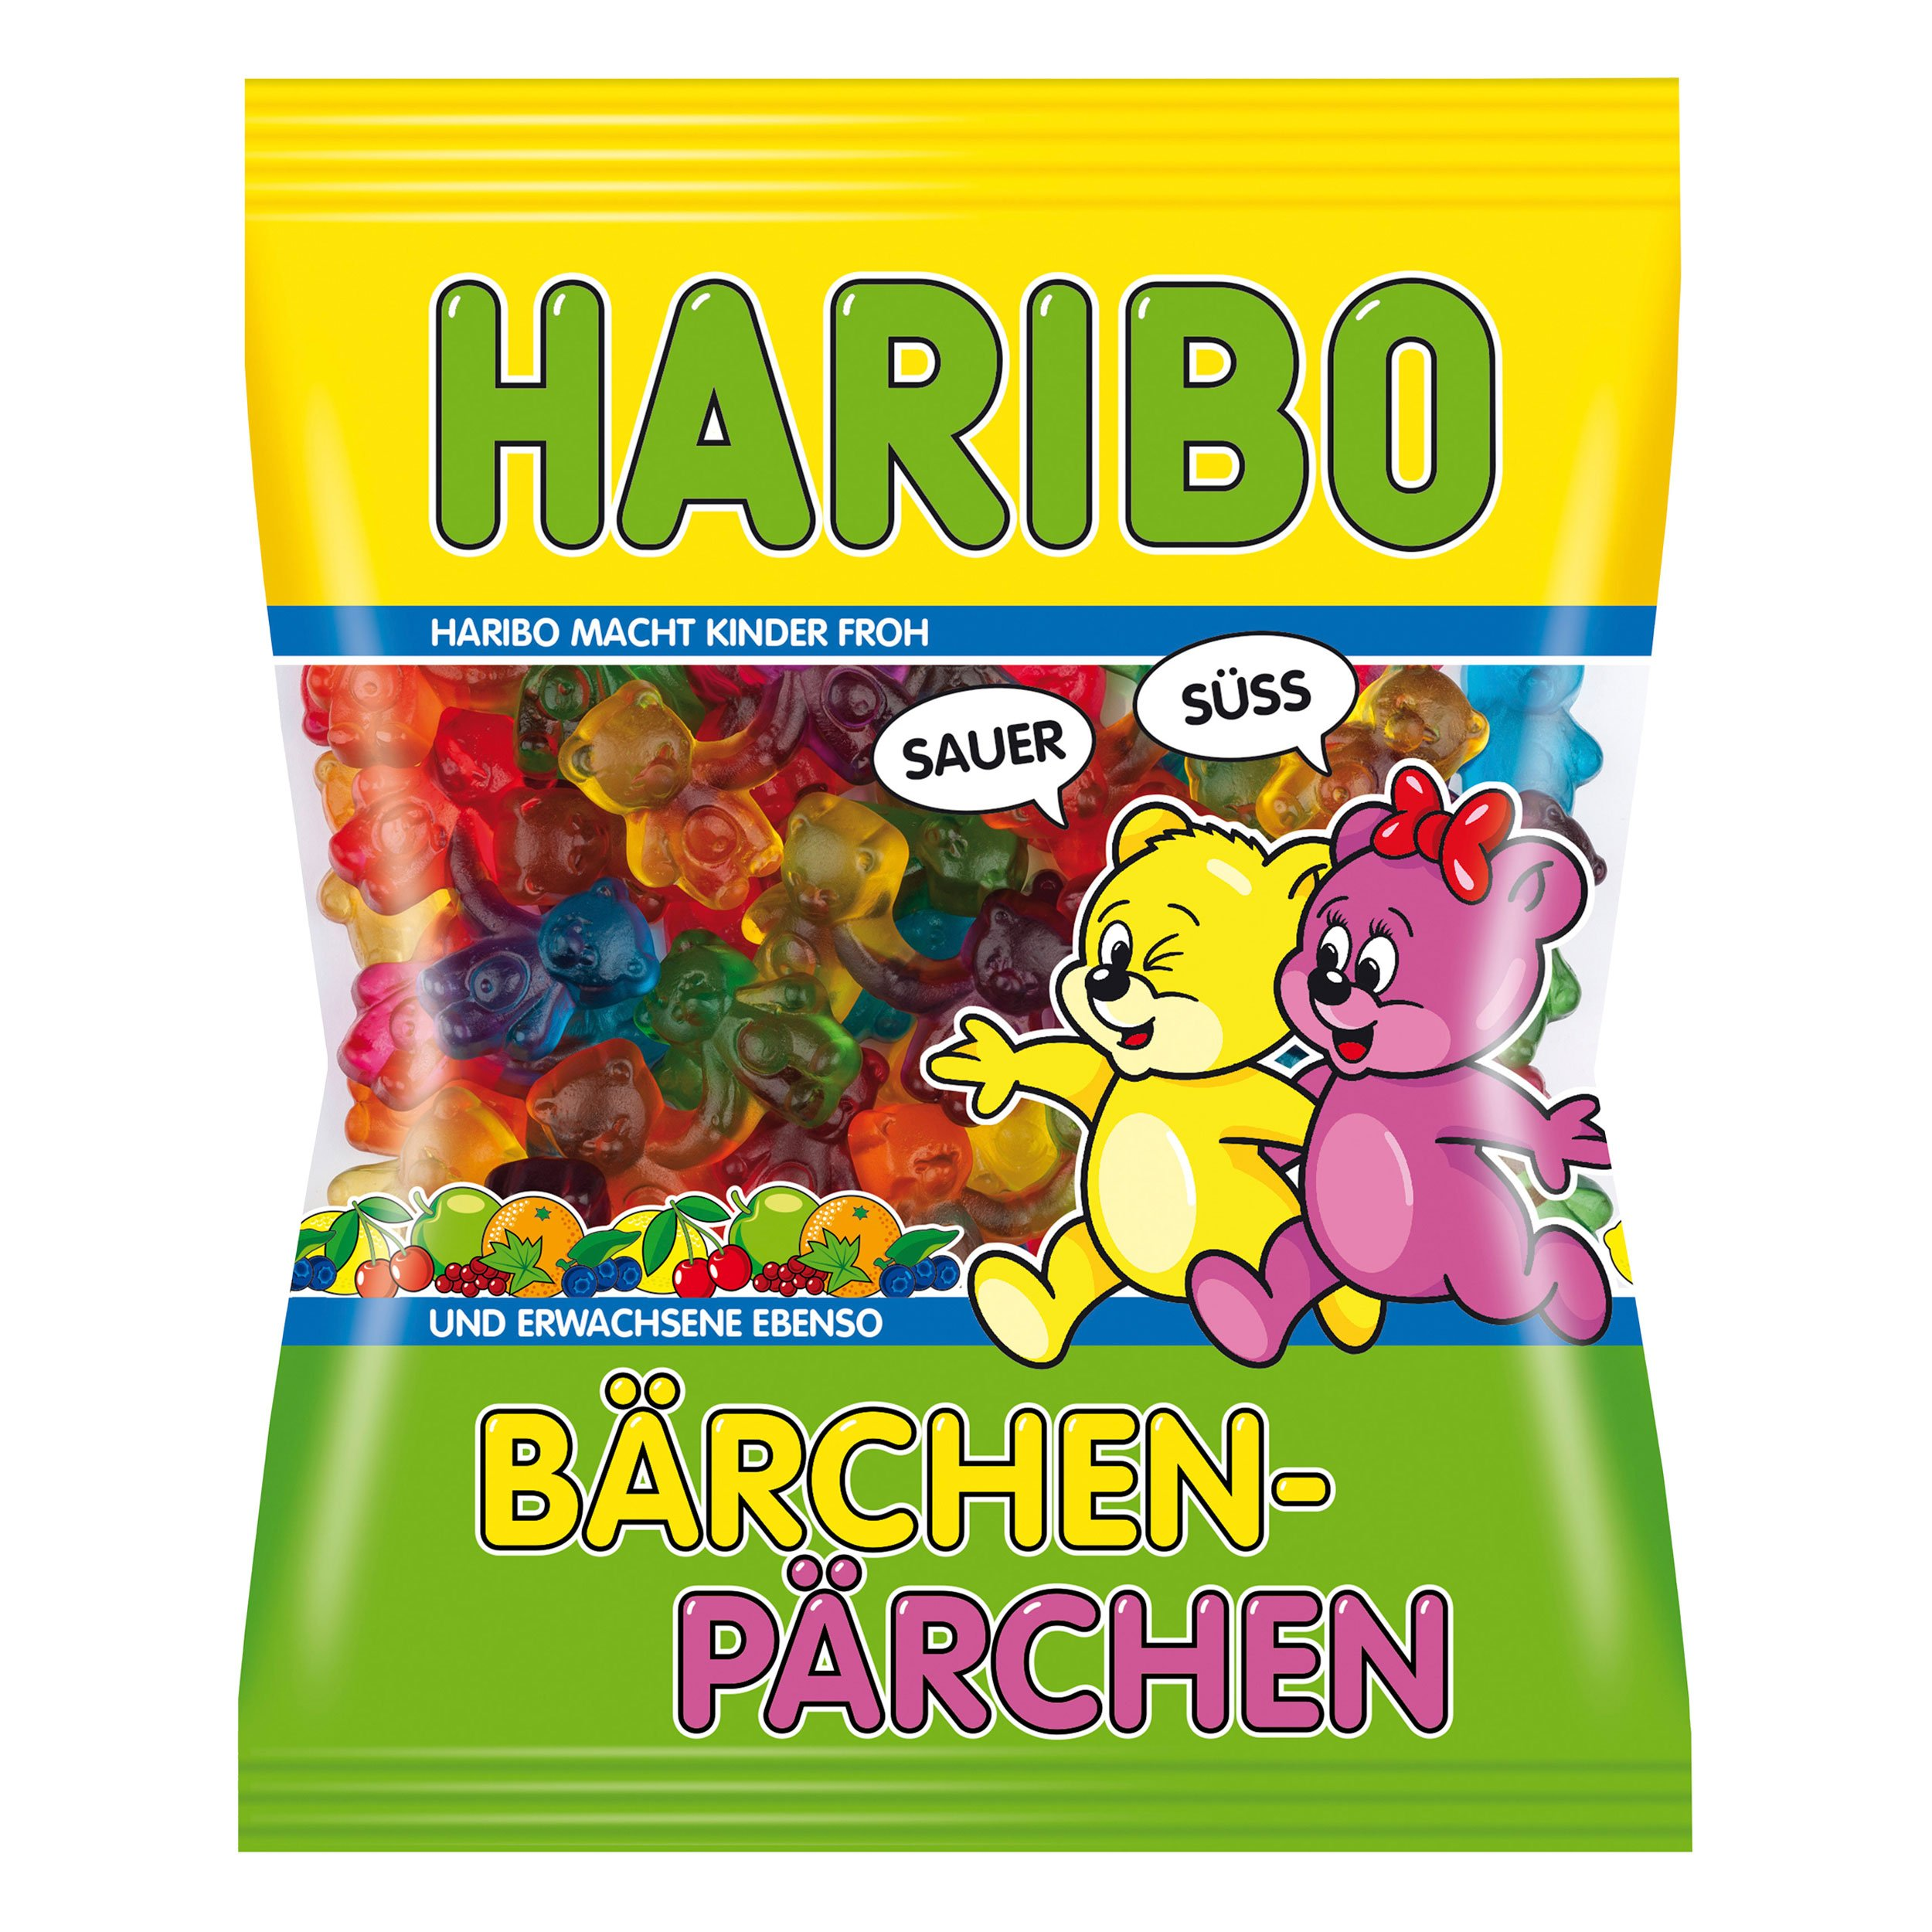 Haribo gummy bears are just one of many products that thomas - Haribo Baerchen Paerchen Sour And Sweet 6 17oz New 2014